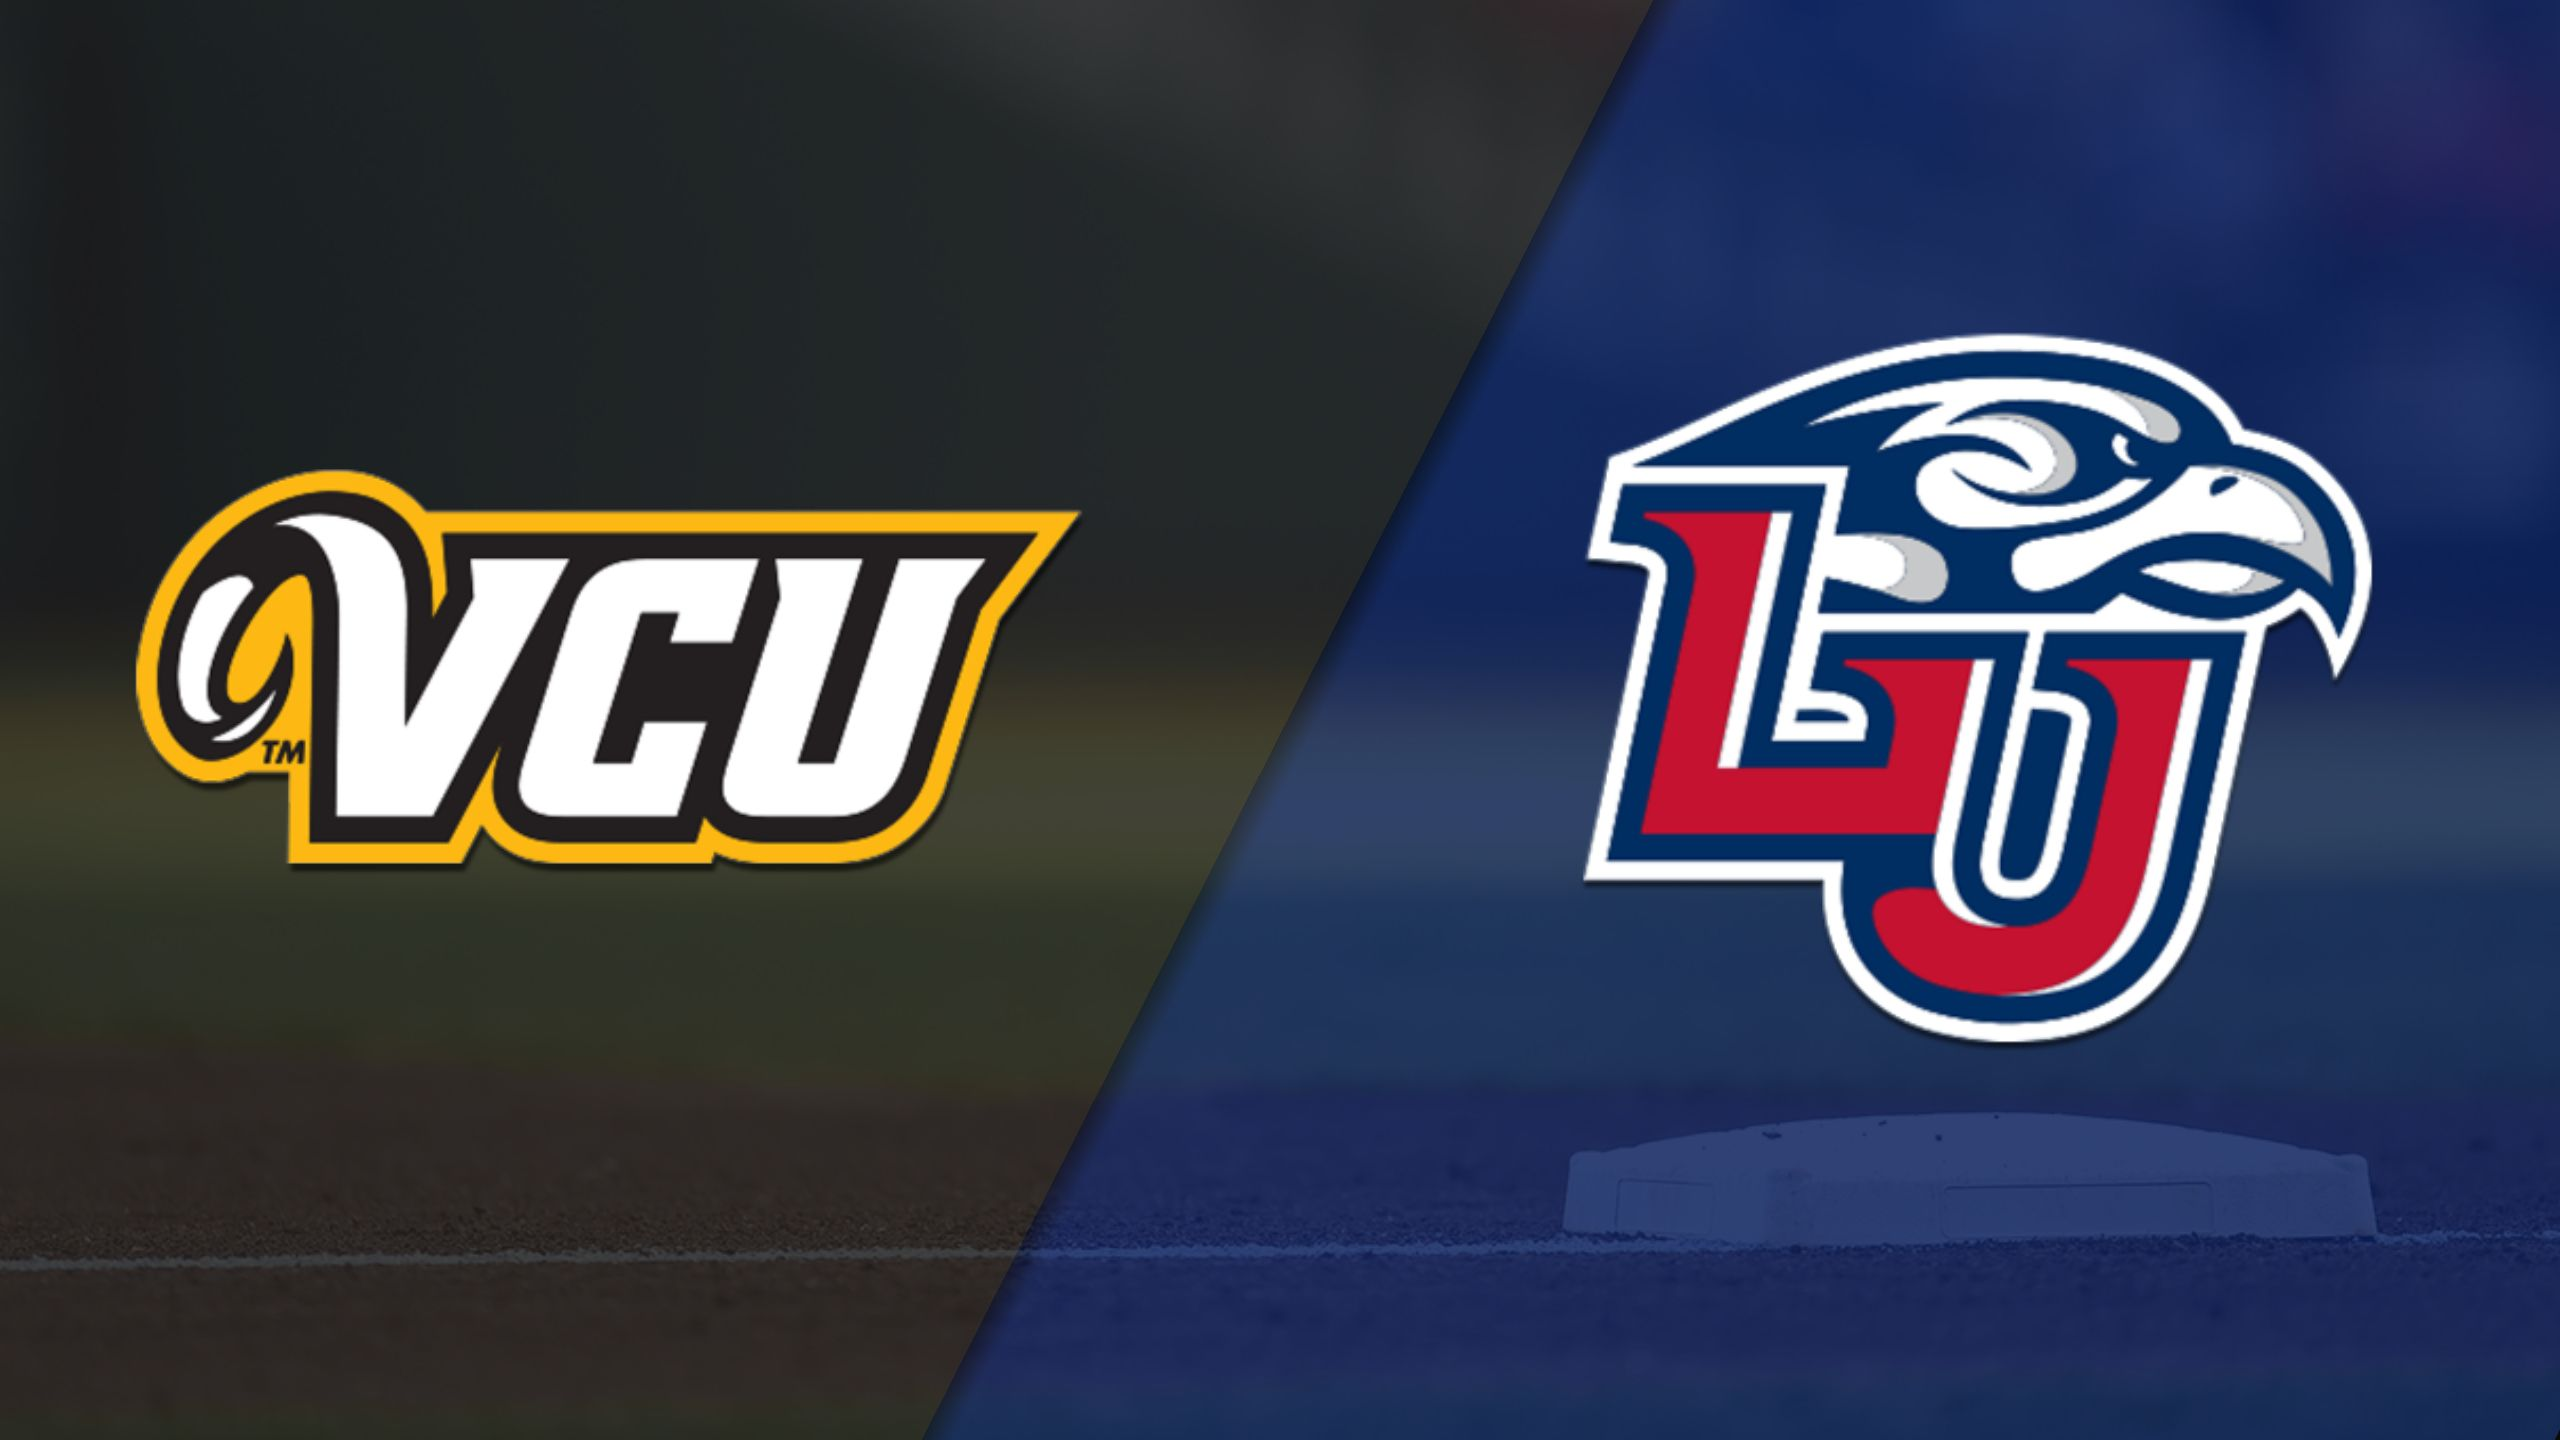 VCU vs. Liberty (Baseball)